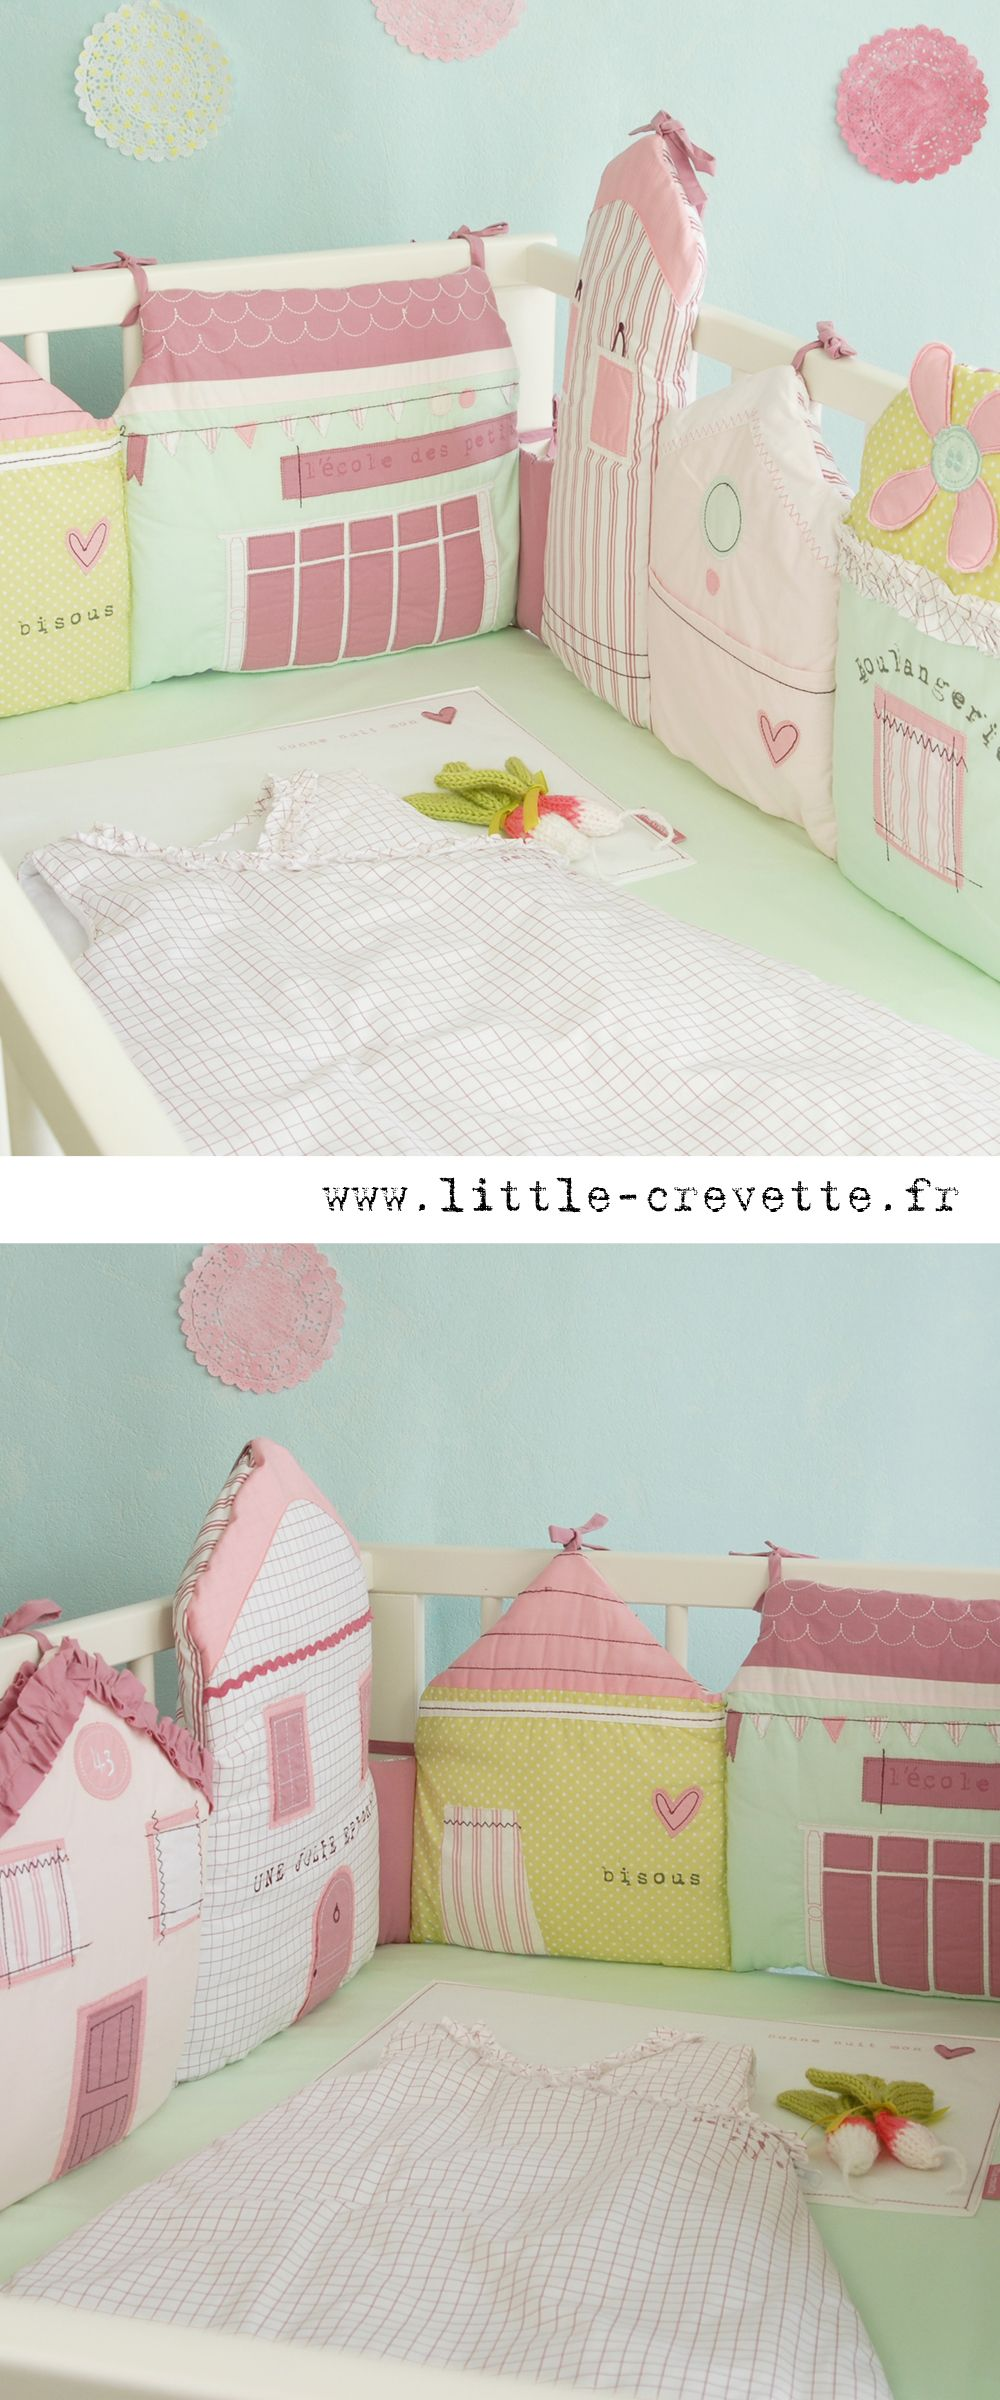 Bettnestchen Baby Make Similar For Her Crib Sew Cute Baby Nähen Baby